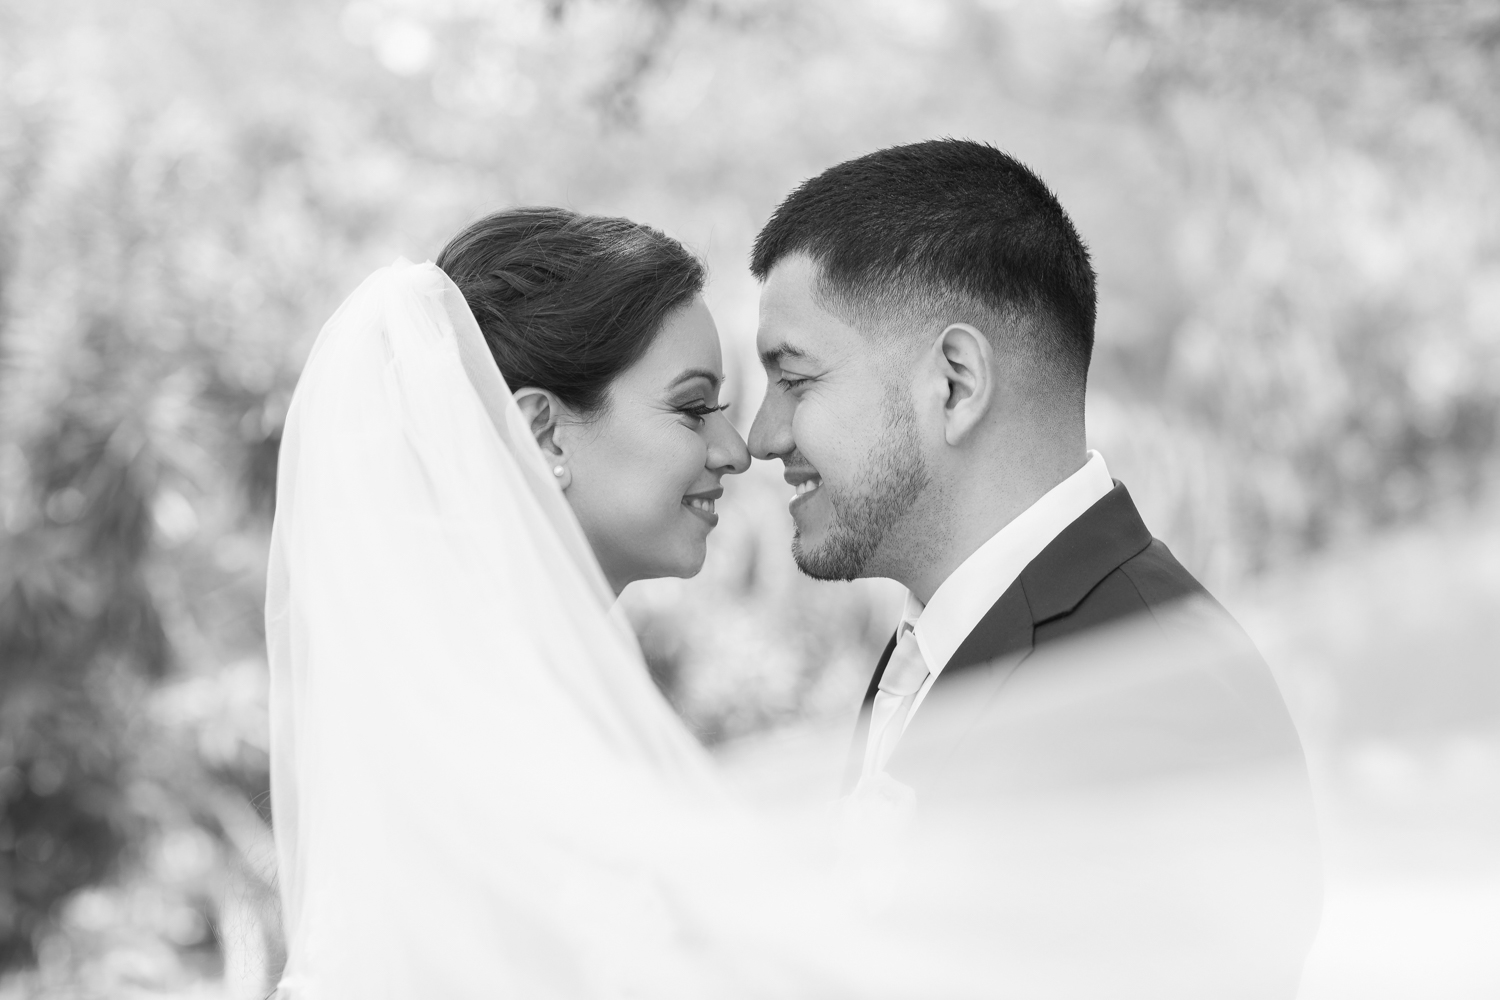 Bride and Groom Black and White Portrait wrapped in veil.jpg.jpg